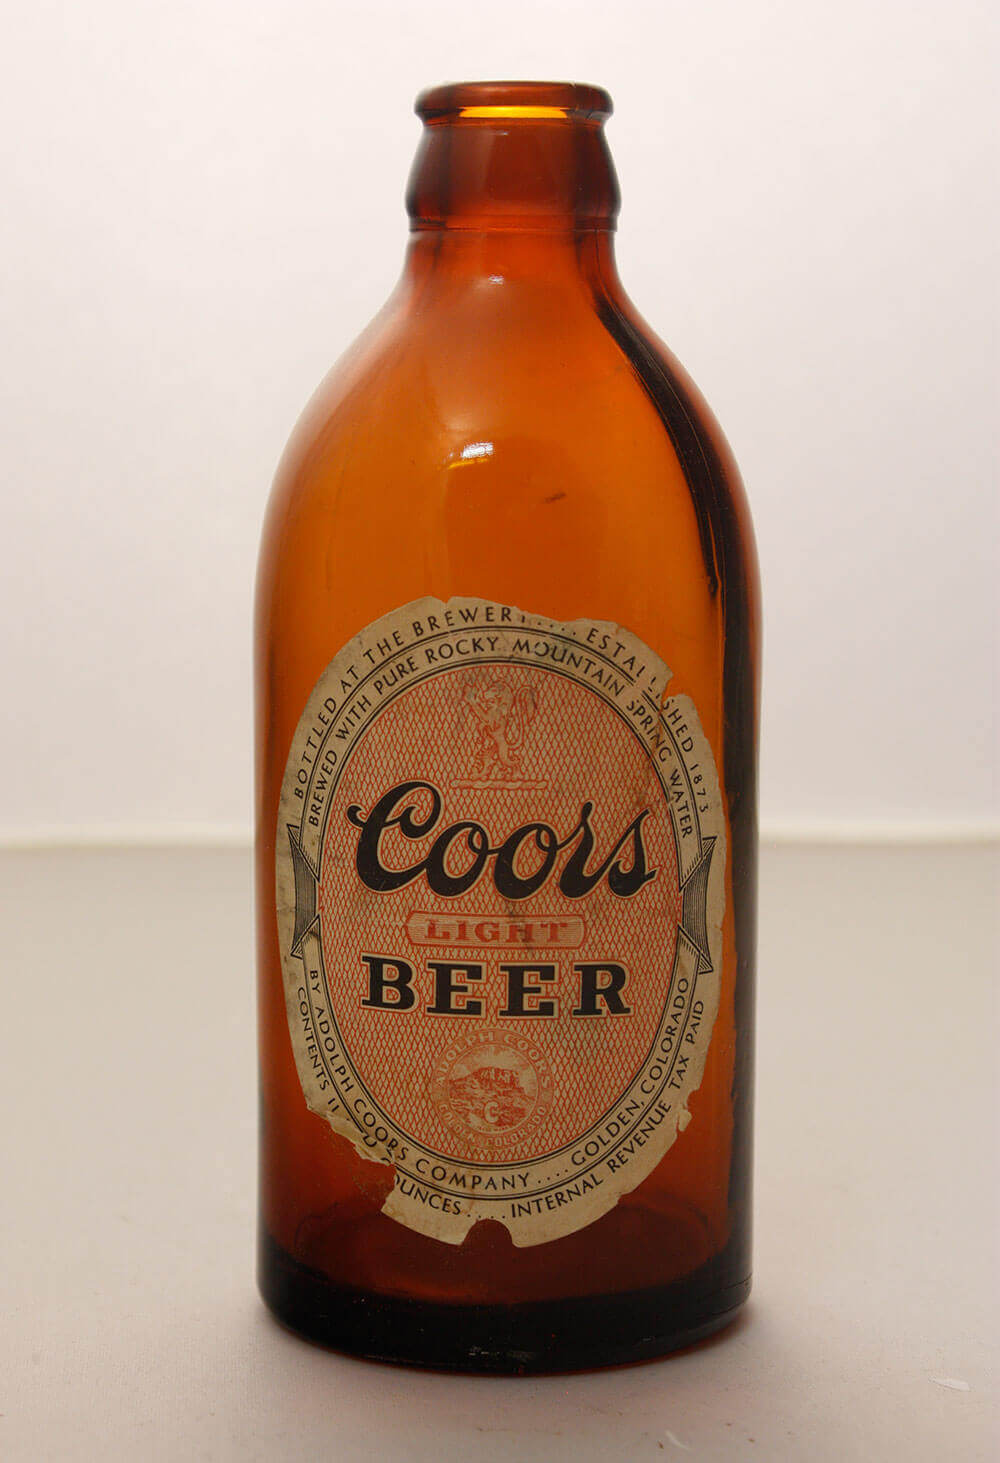 Coors Light beer bottle